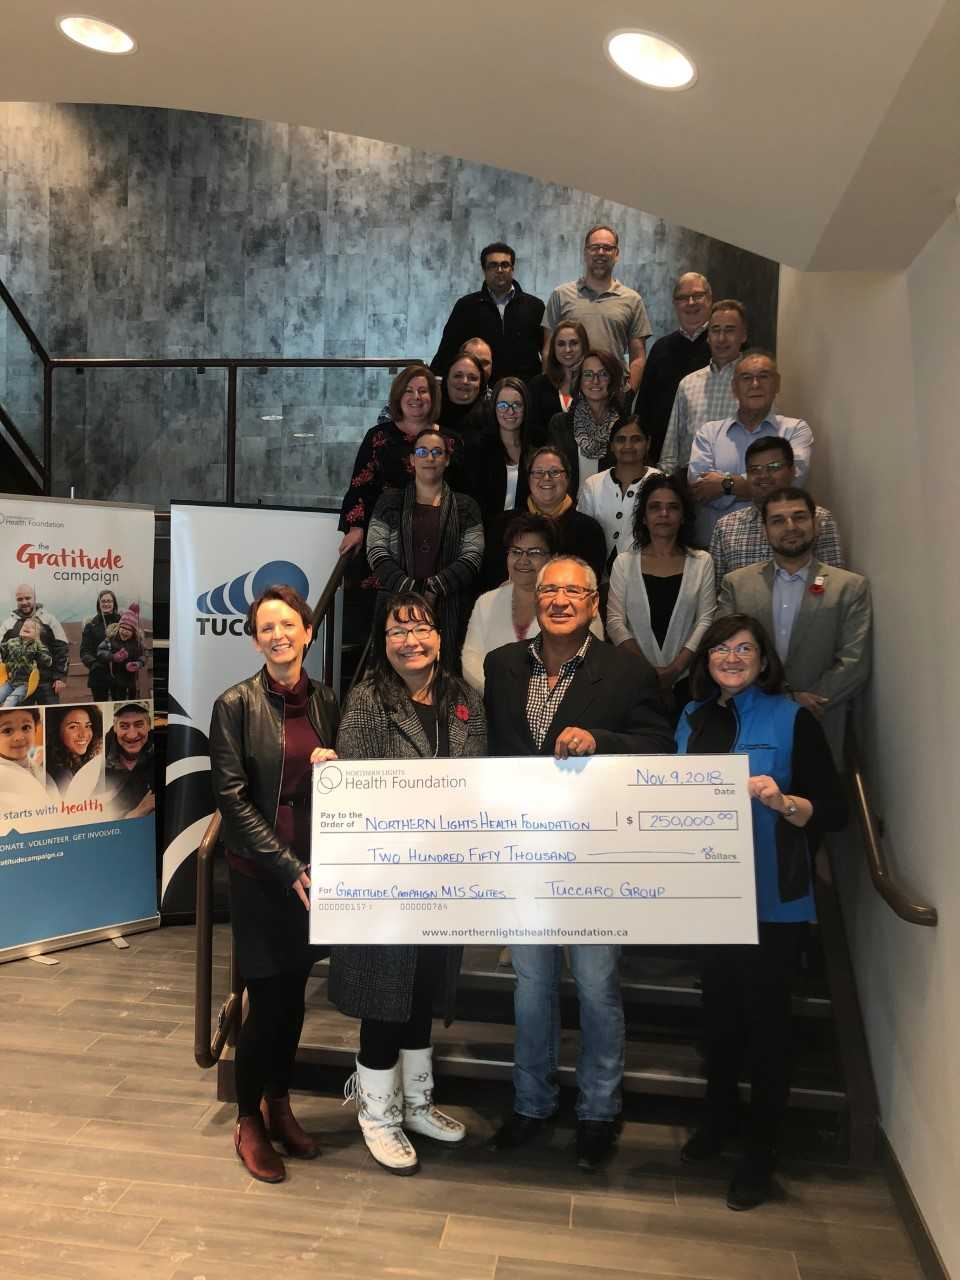 NLHF's Gratitude Campaign Nearly Finished, Tuccaro Group Donates $250K